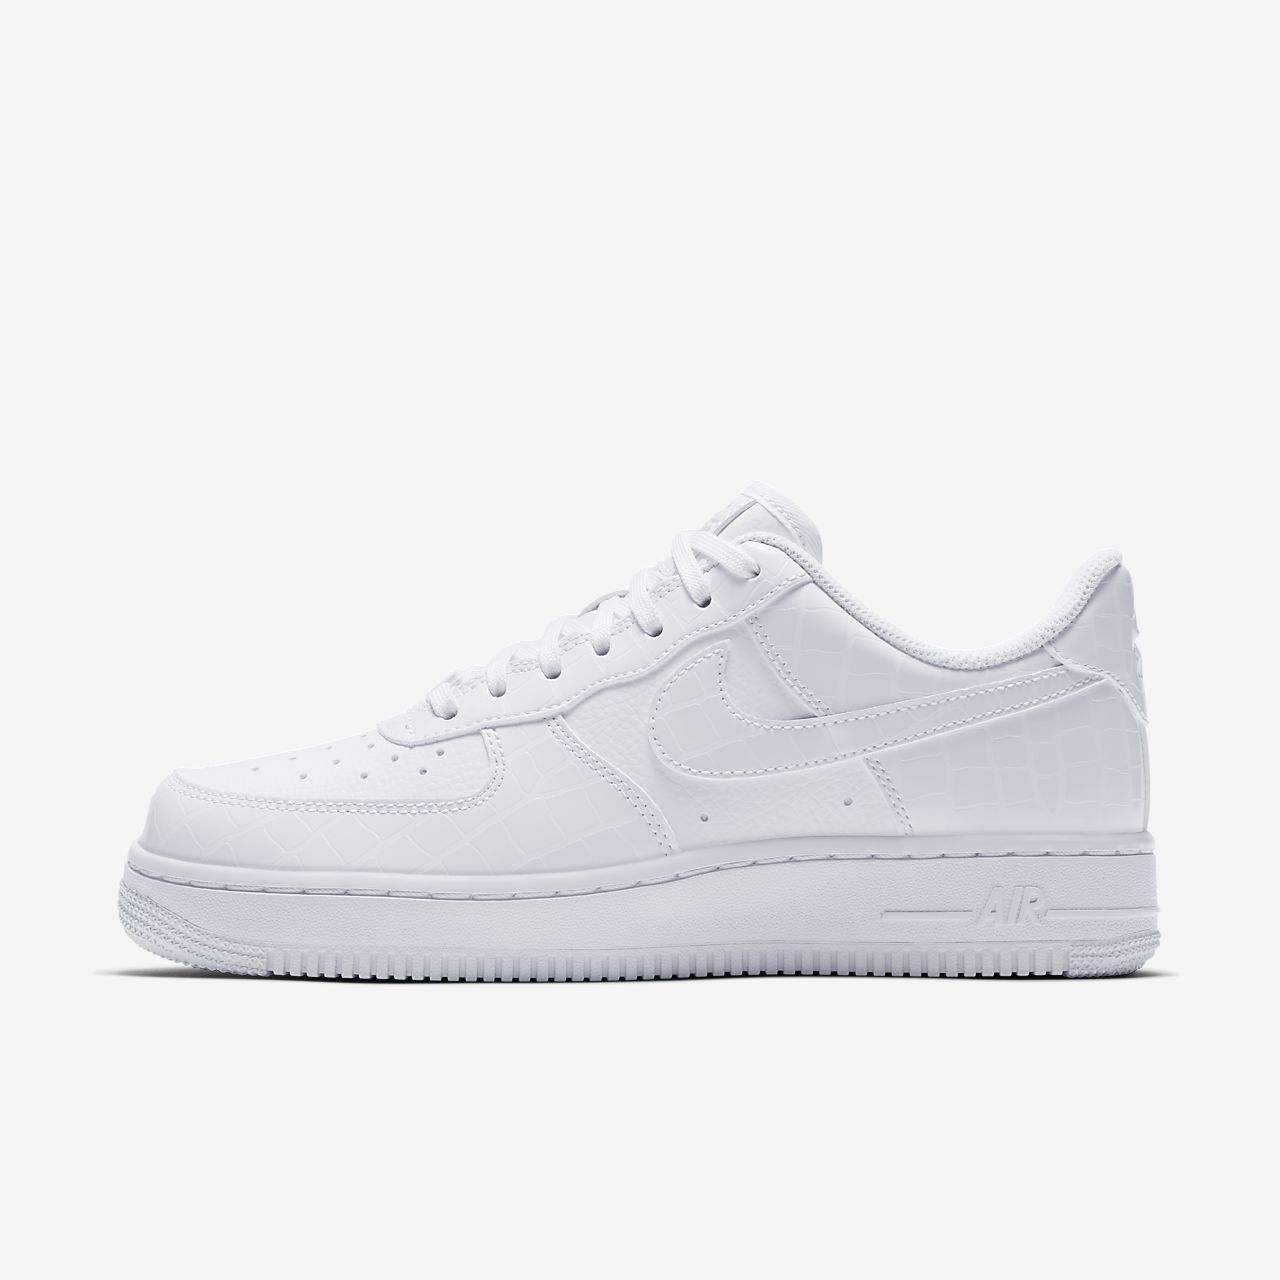 ... Chaussure Nike Air Force 1 '07 Essential pour Femme